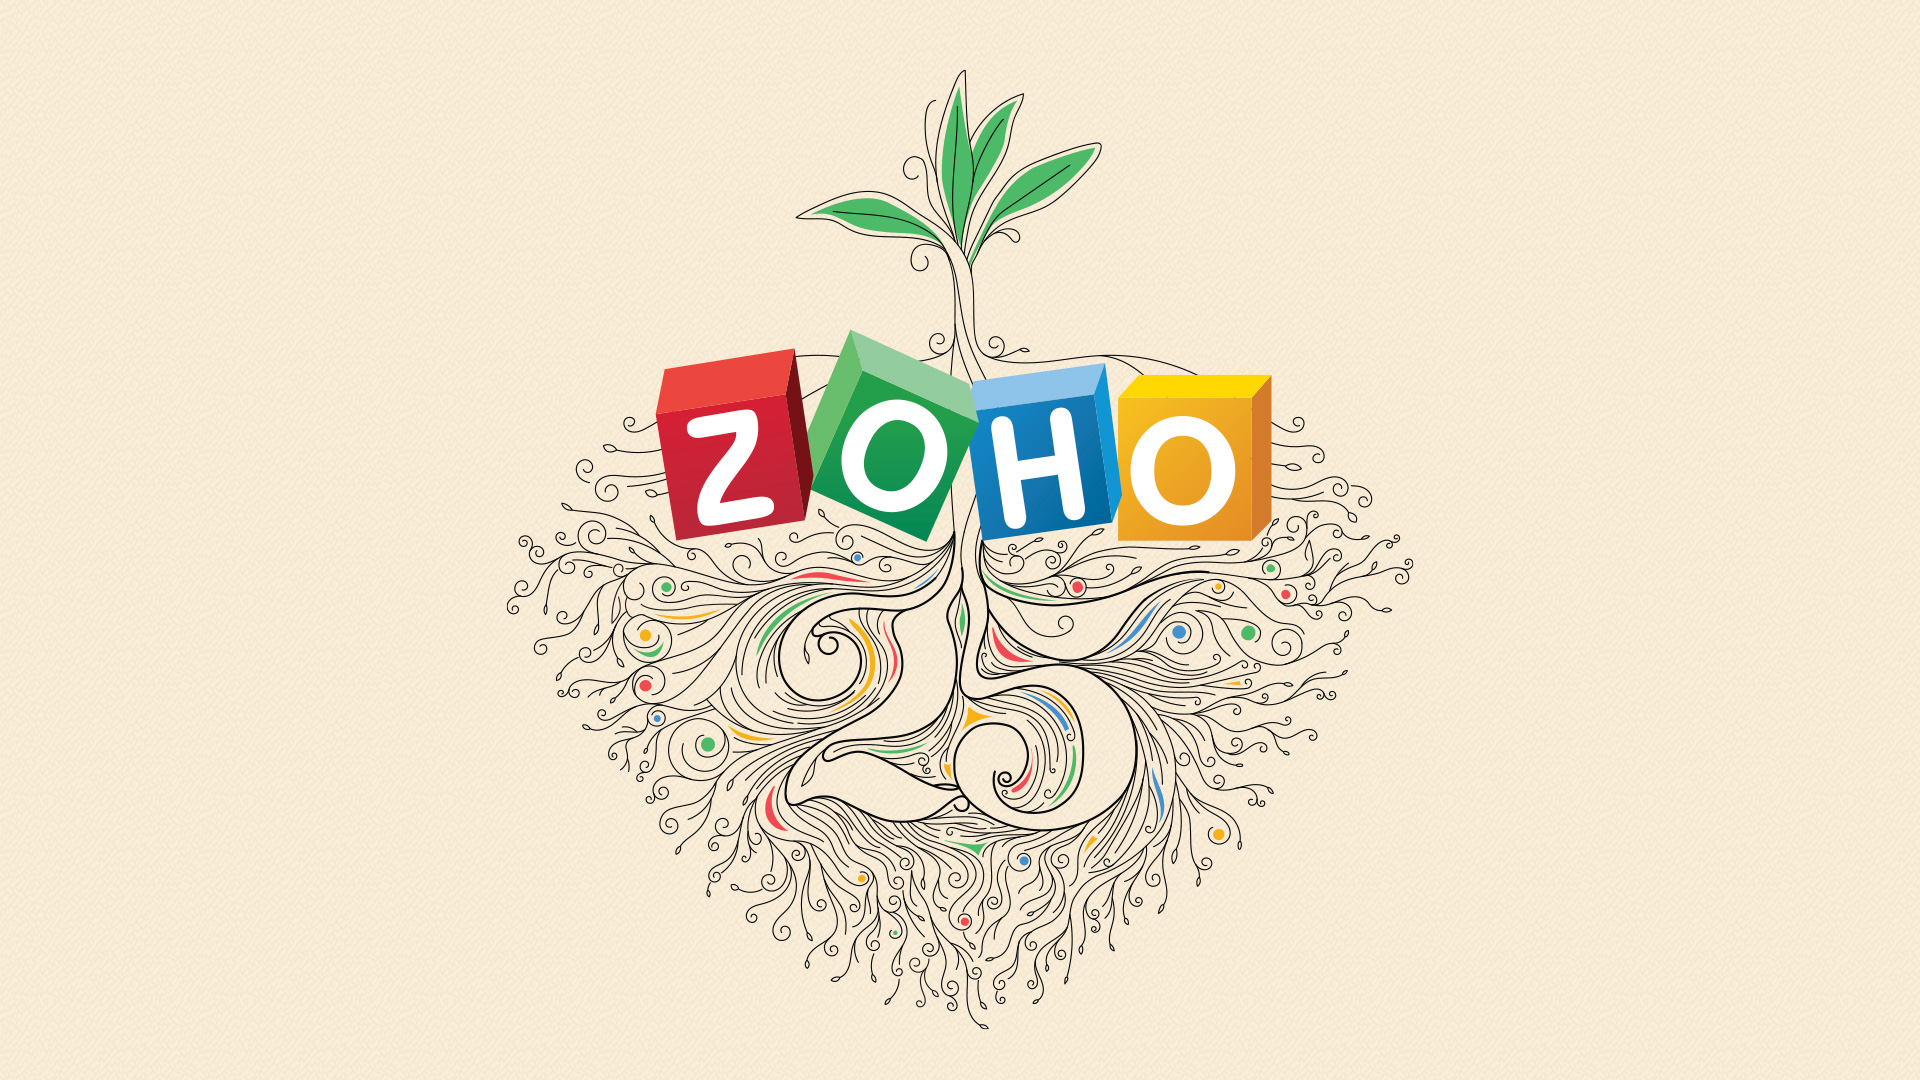 25 years of Zoho: from Adventnet to a self-funded unicorn